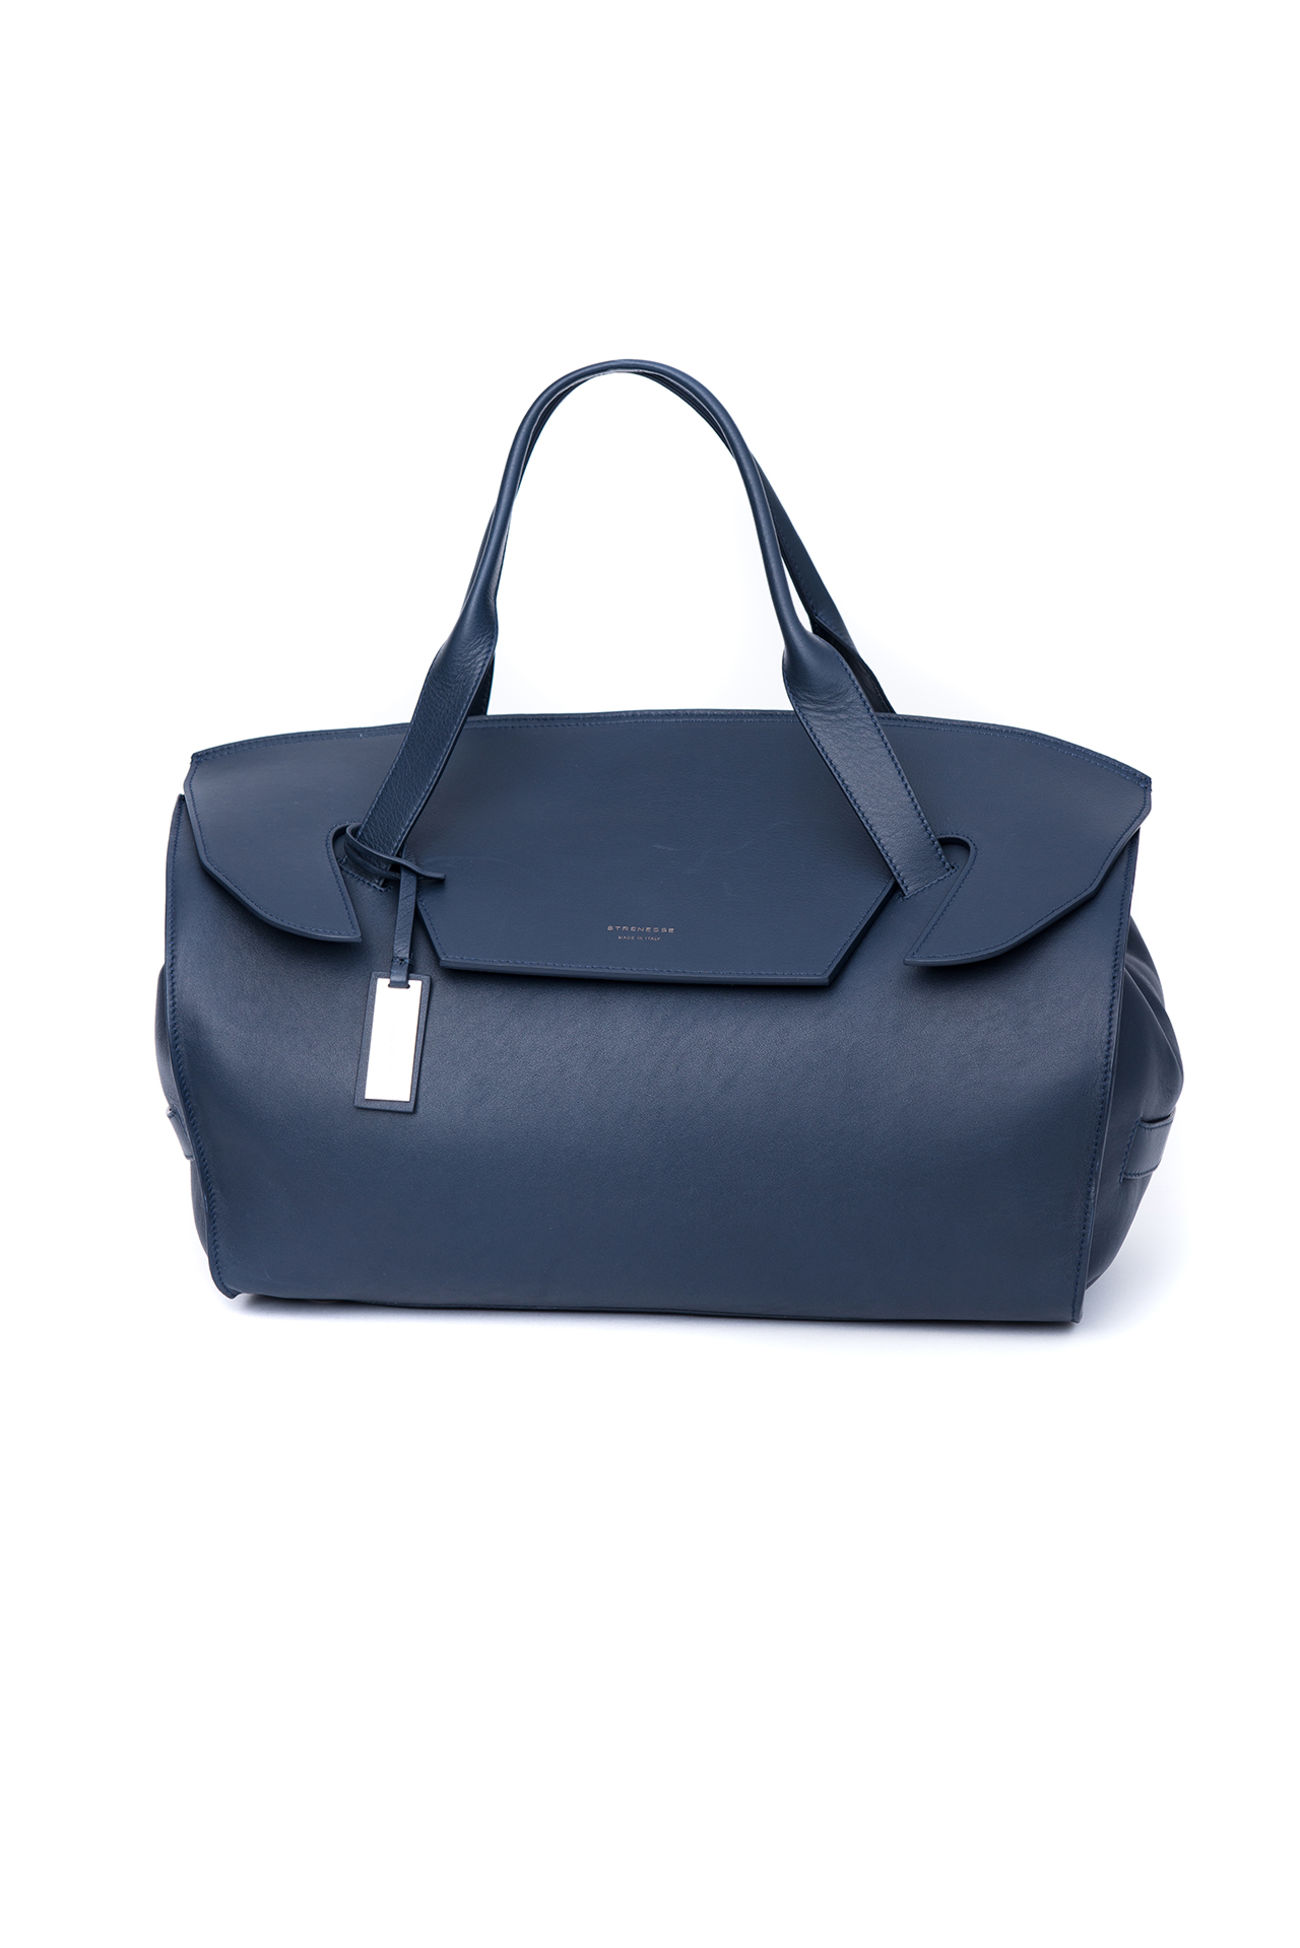 ELLEN bag made of nappa